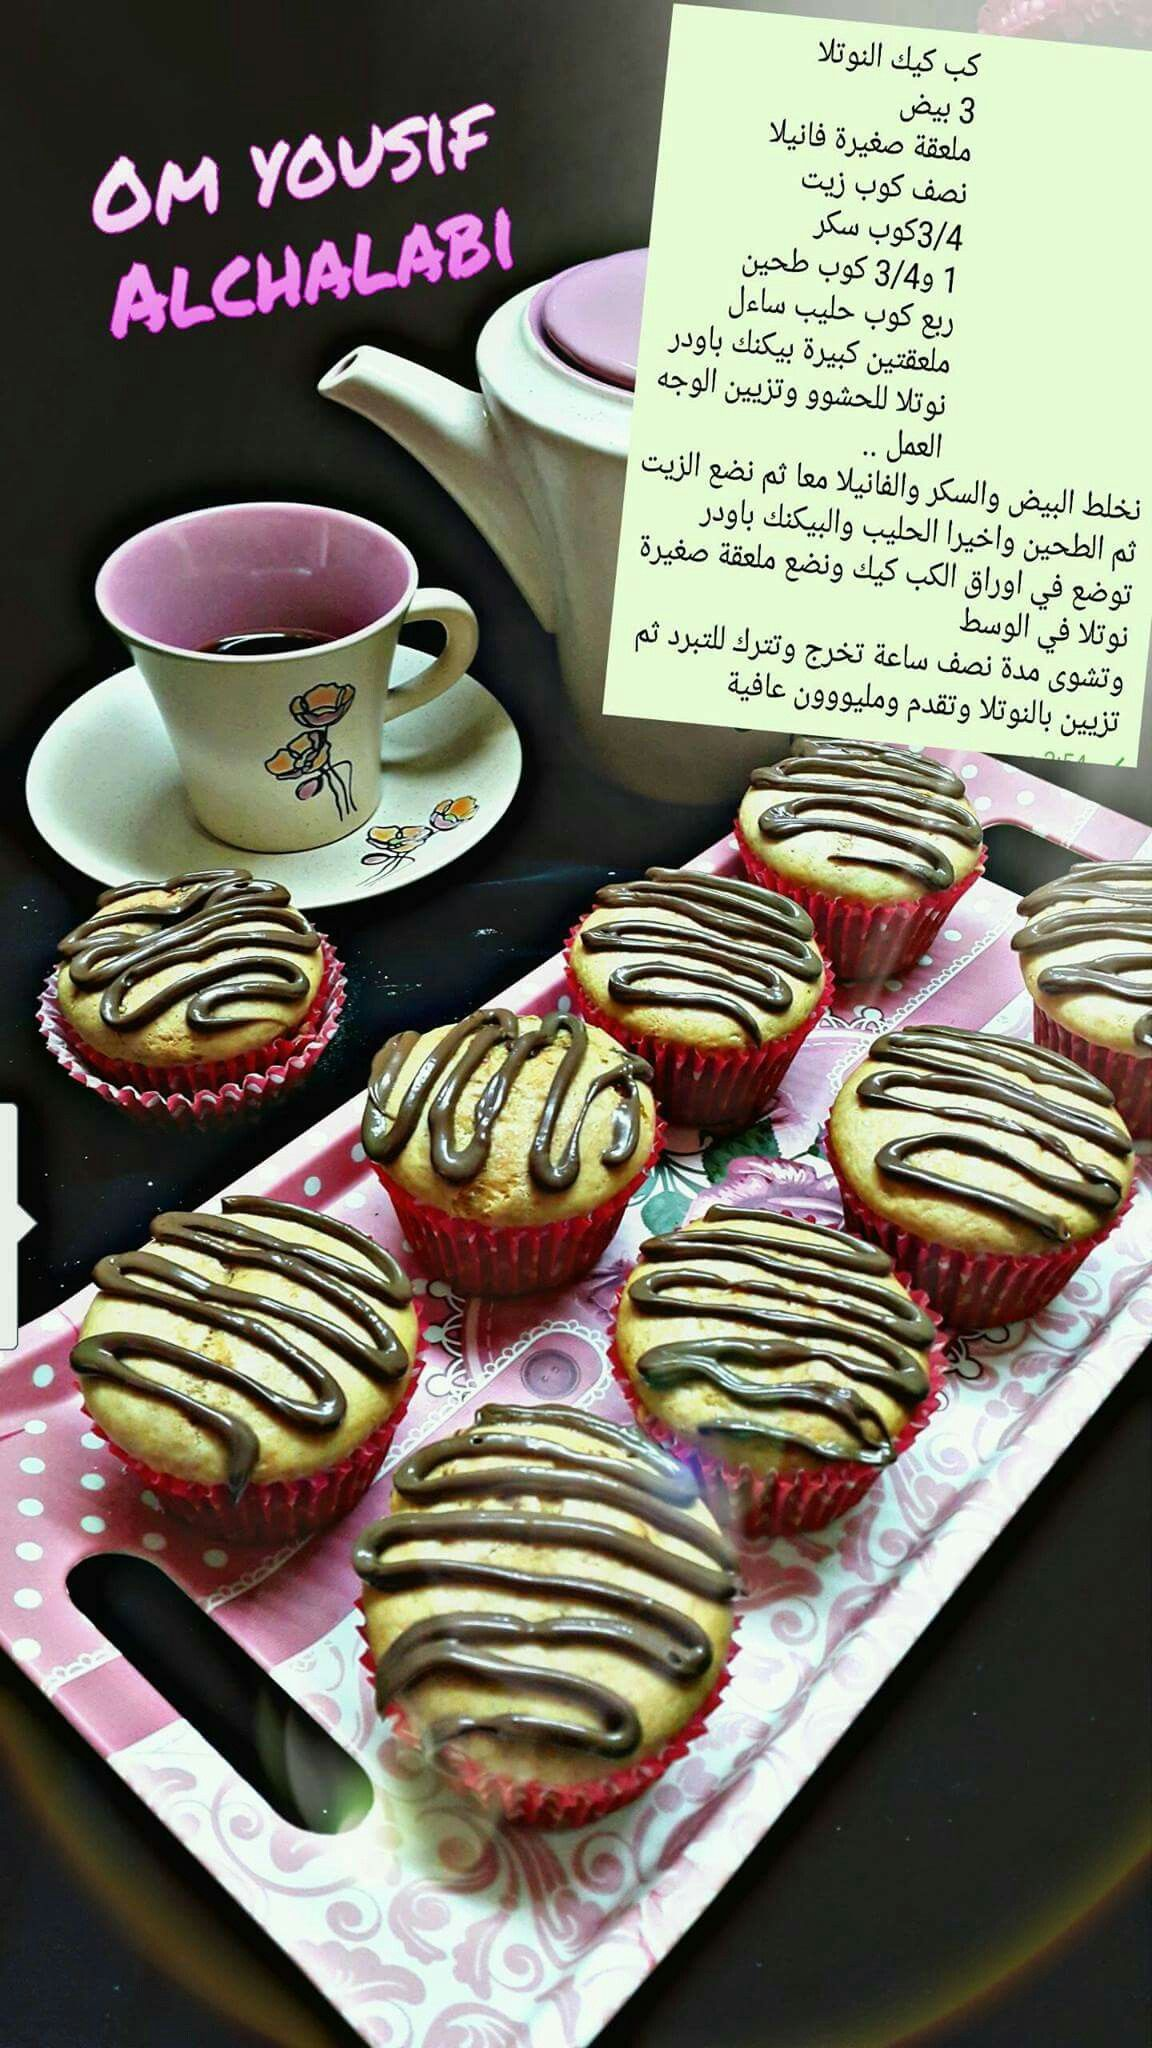 Pin By Sarah Ahmed On Hdrxv Cooking Recipes Desserts Arabic Food Ramadan Recipes